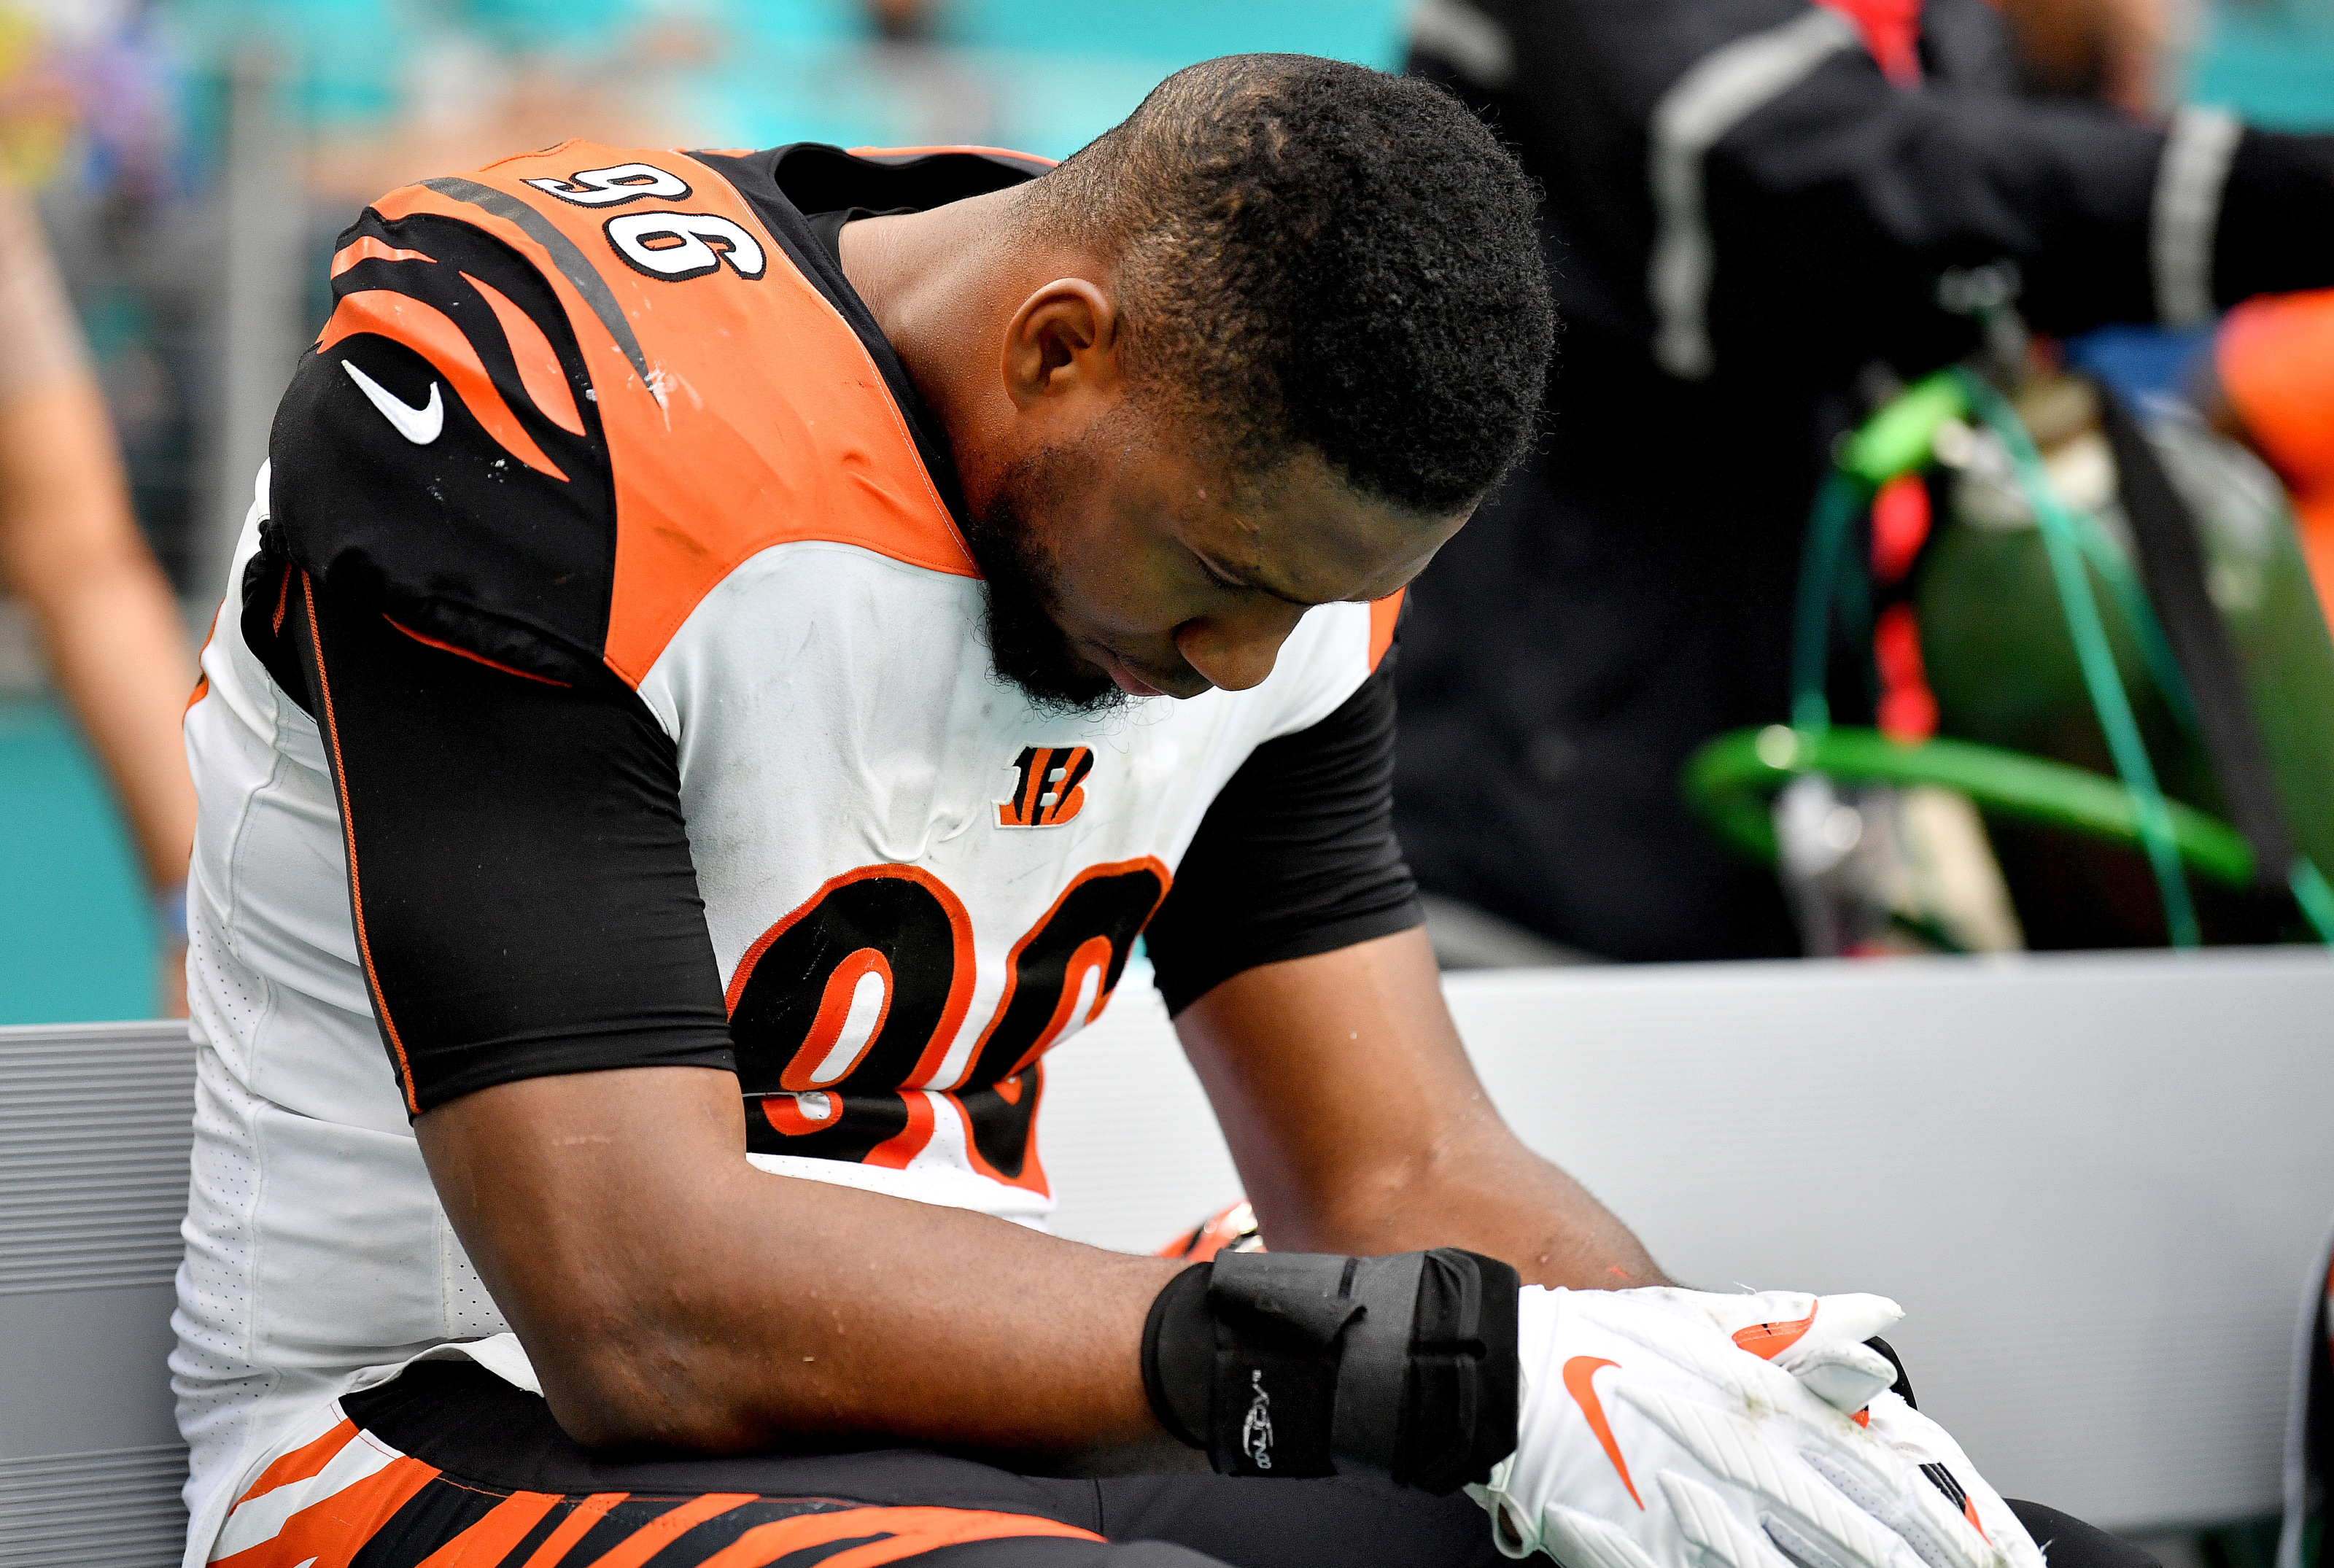 Bengals: Carlos Dunlap has to be gone within the week